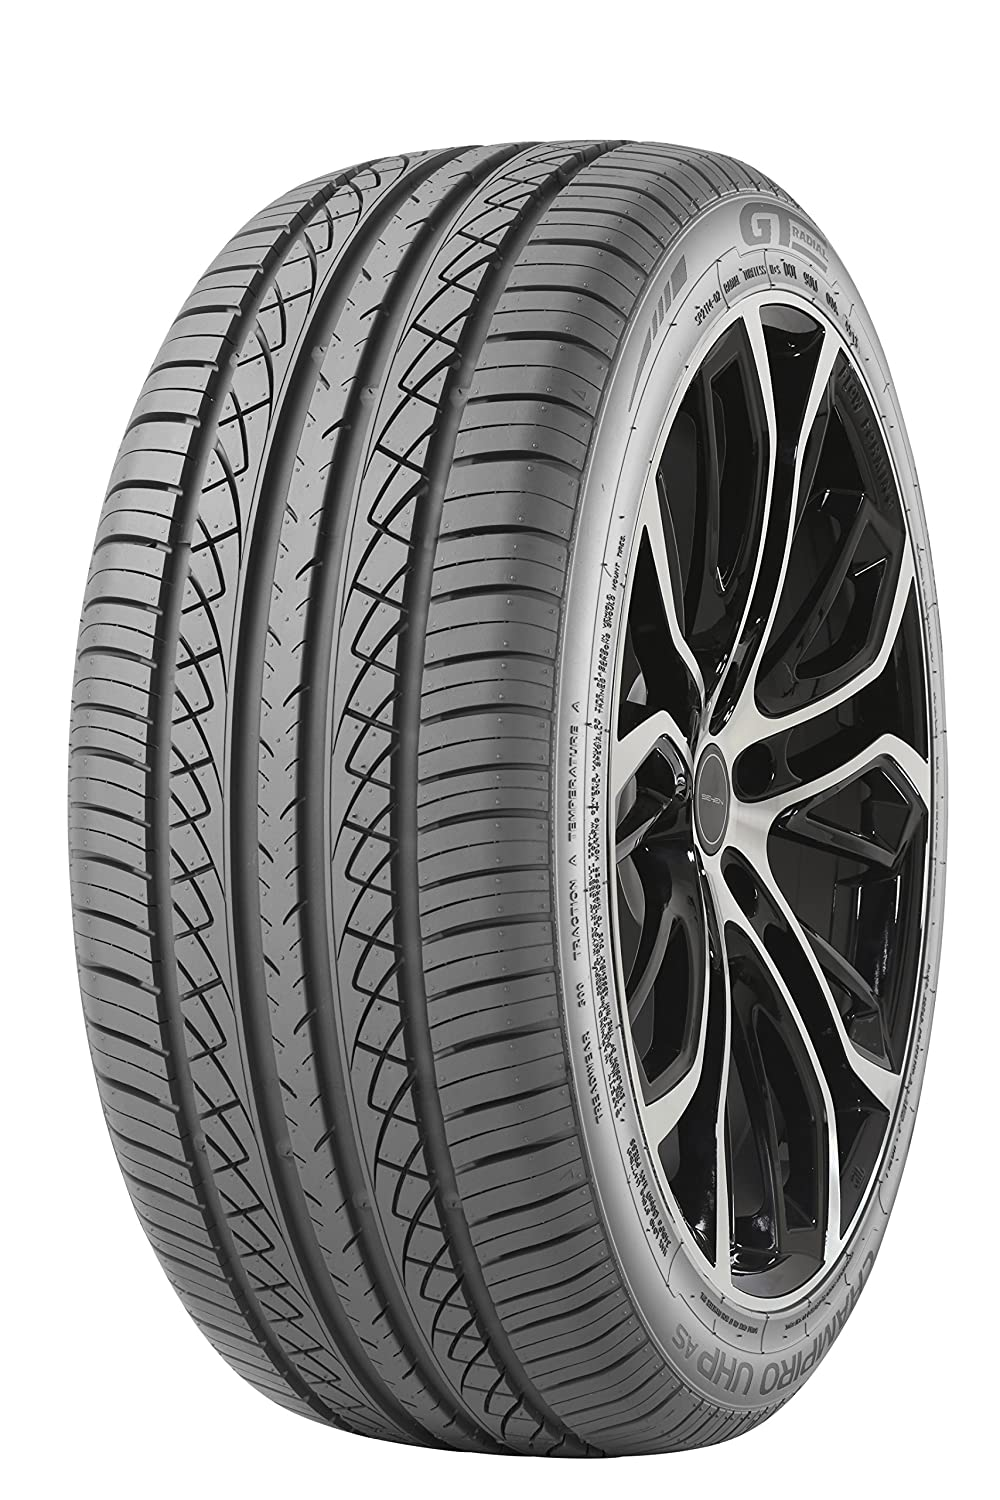 Gt Radial Tires >> Gt Radial Champiro Uhpas Performance Radial Tire 225 50zr17 94w